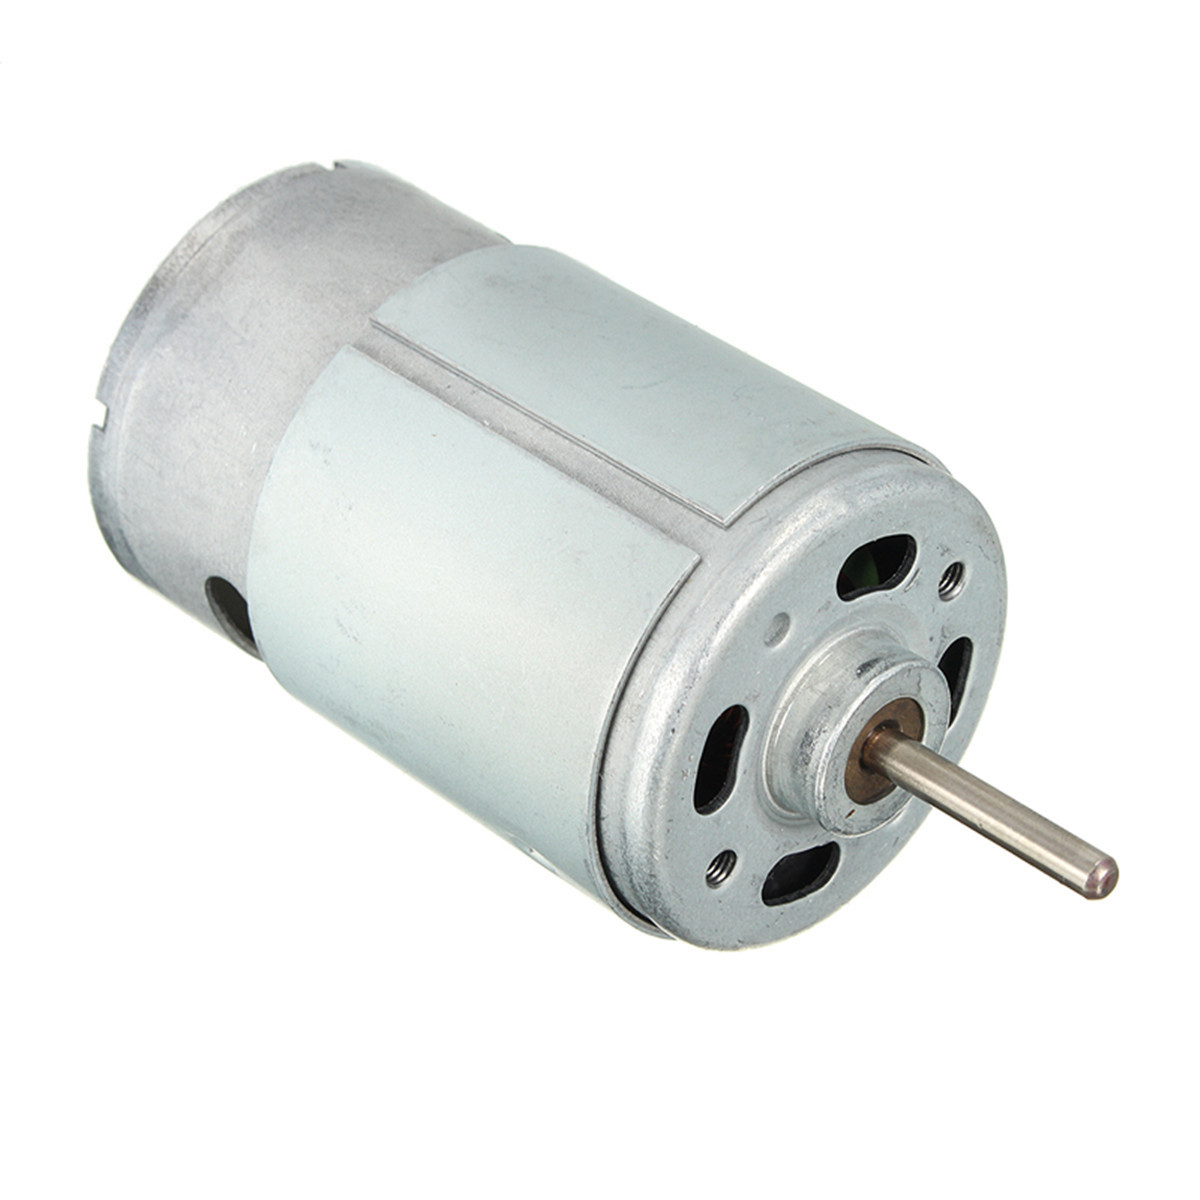 New DC Motor 12V 30000 RPM For Children Electric Car,RC Ride, Baby Car Electric Motor RS550 Gearbox 10 Teeth Engine